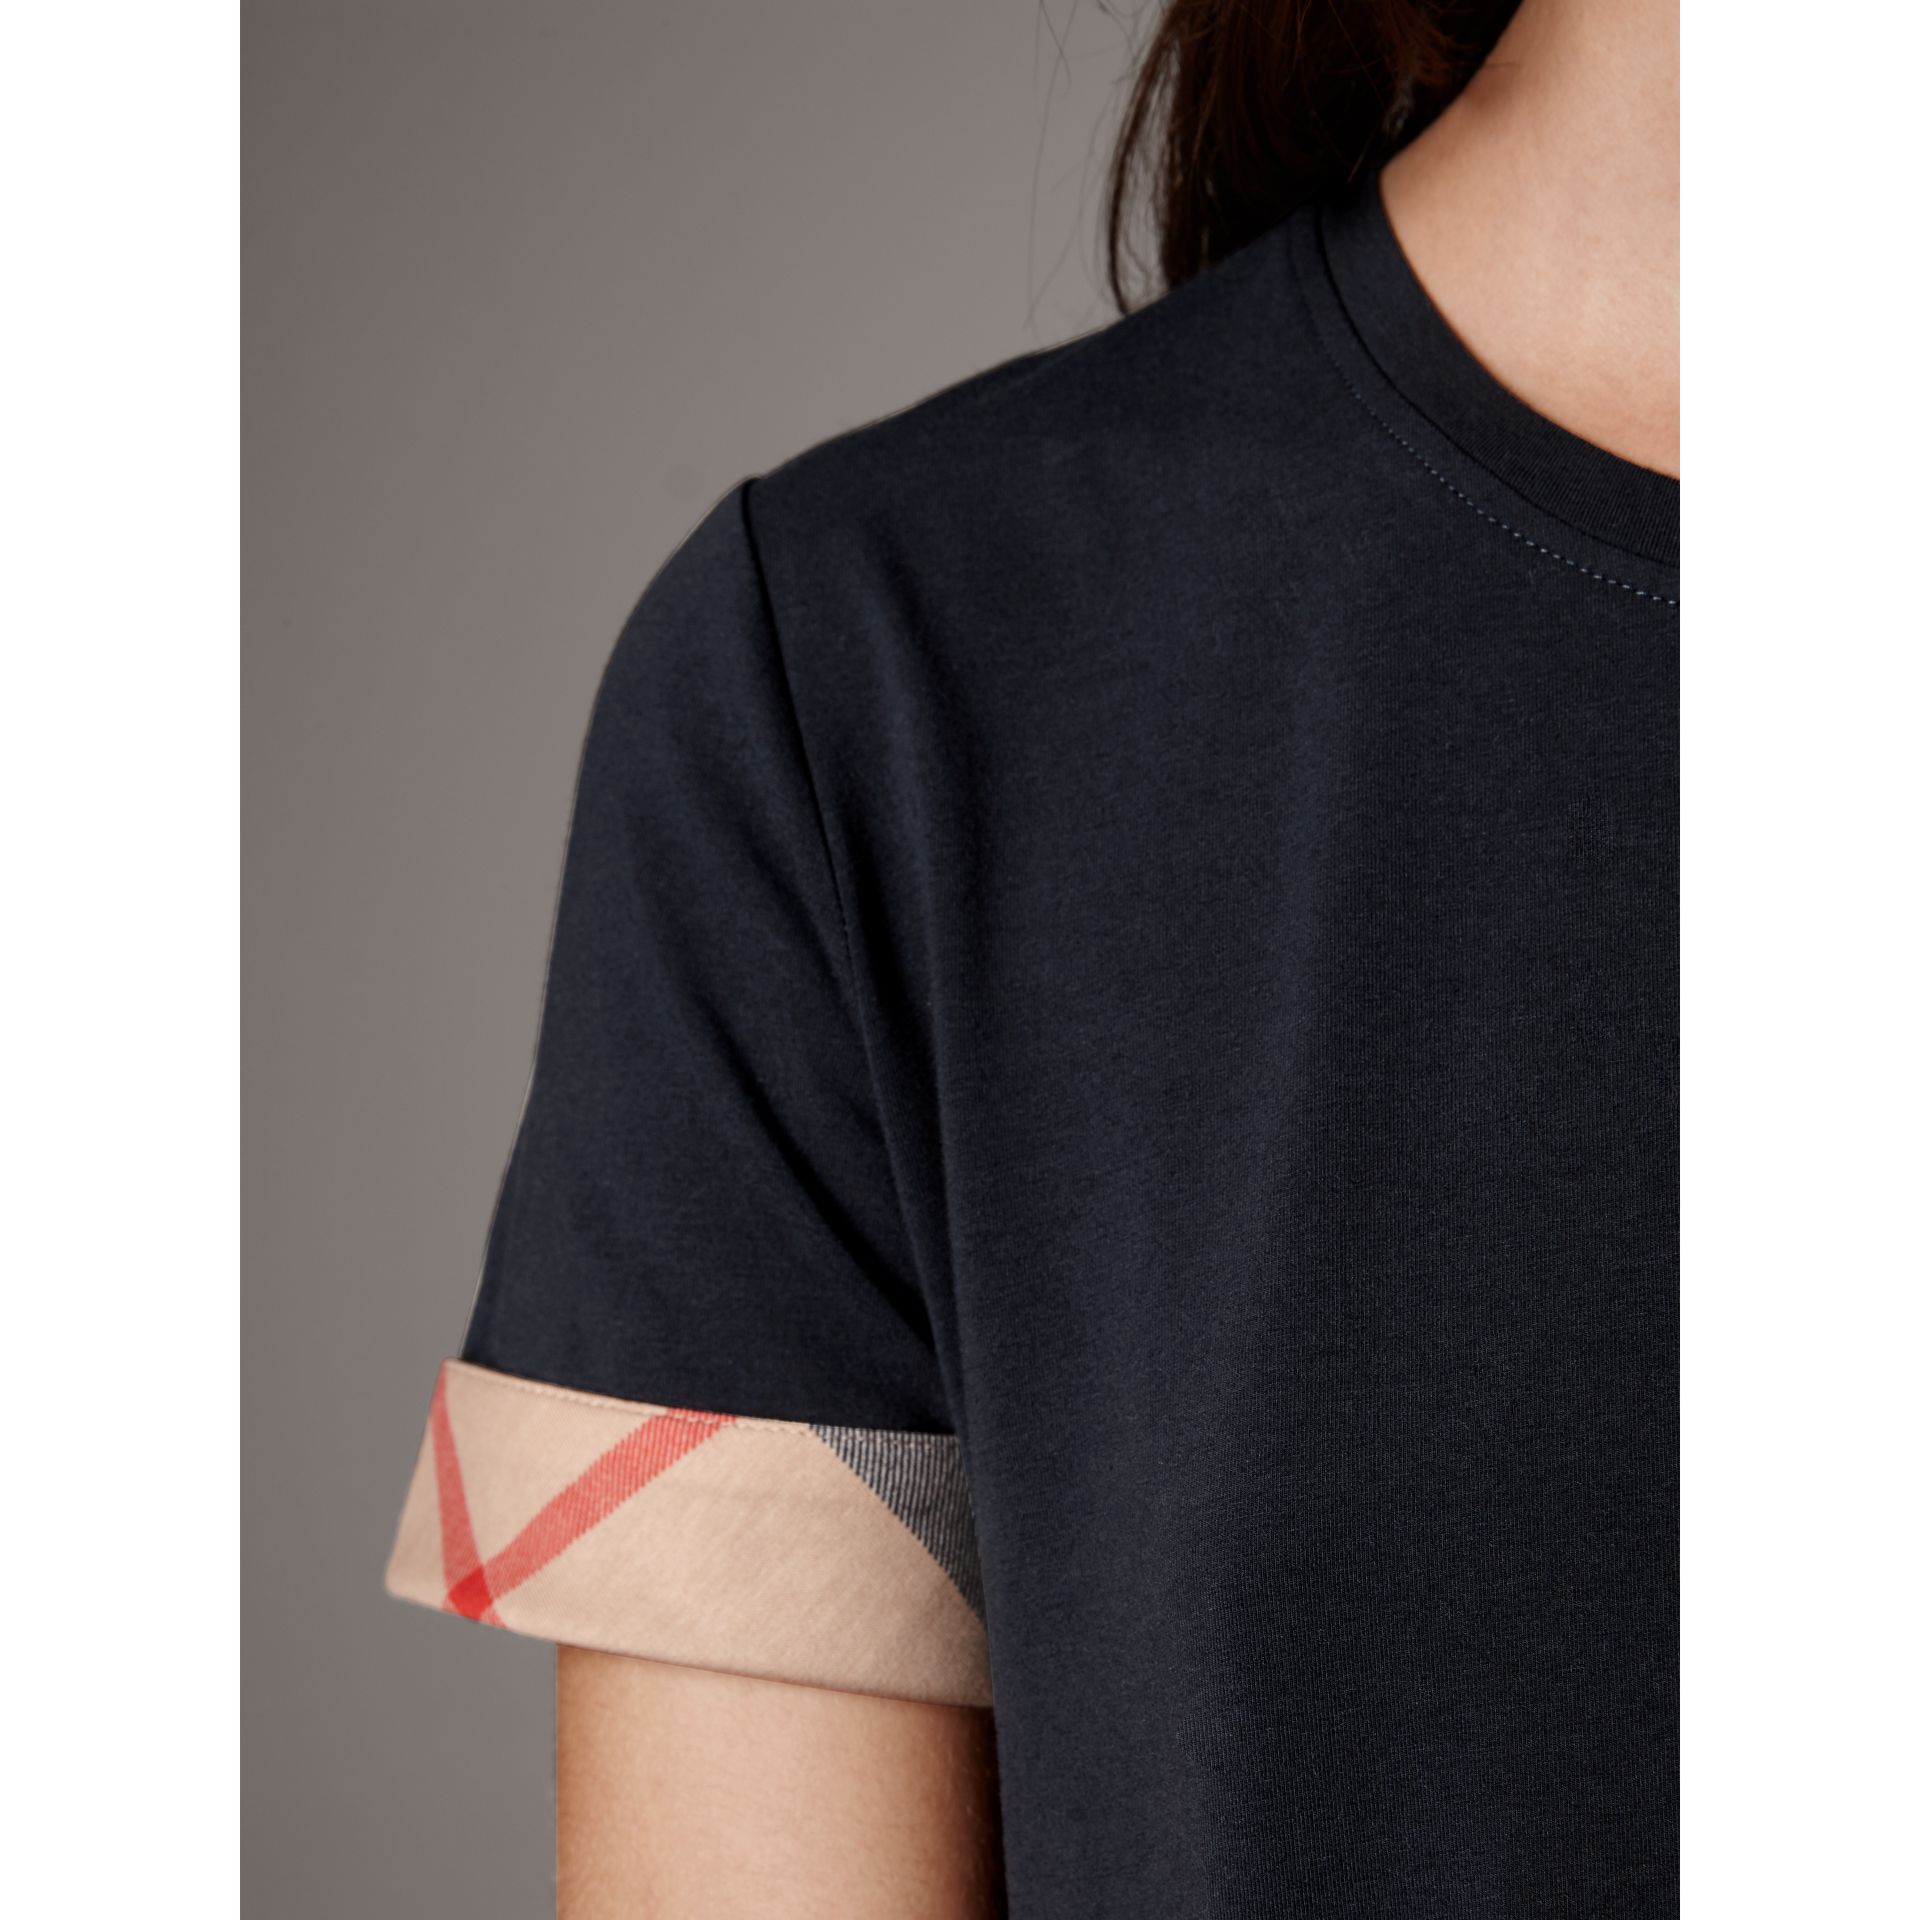 Check Cuff Stretch Cotton T-Shirt in Navy - Women | Burberry Hong Kong - gallery image 1